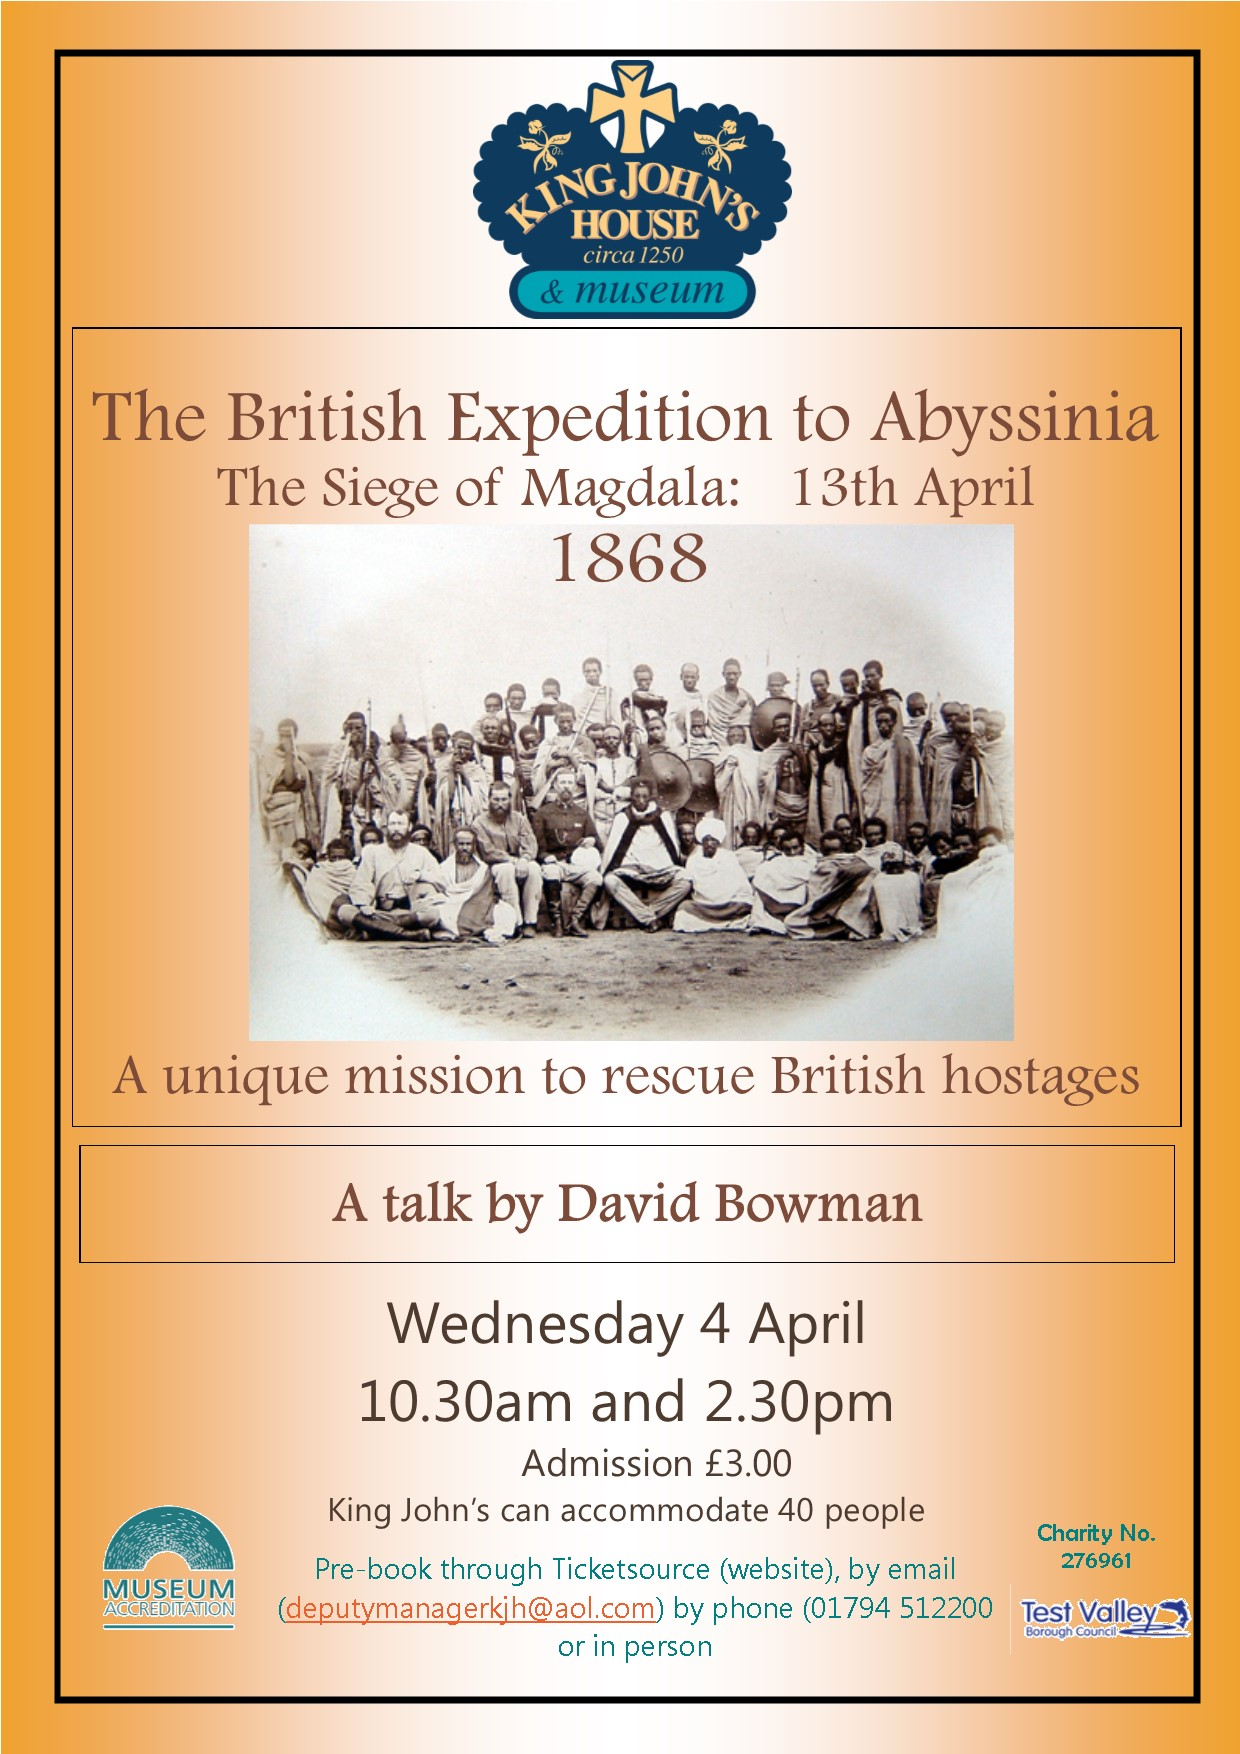 The British Exhibition to Abyssinia –